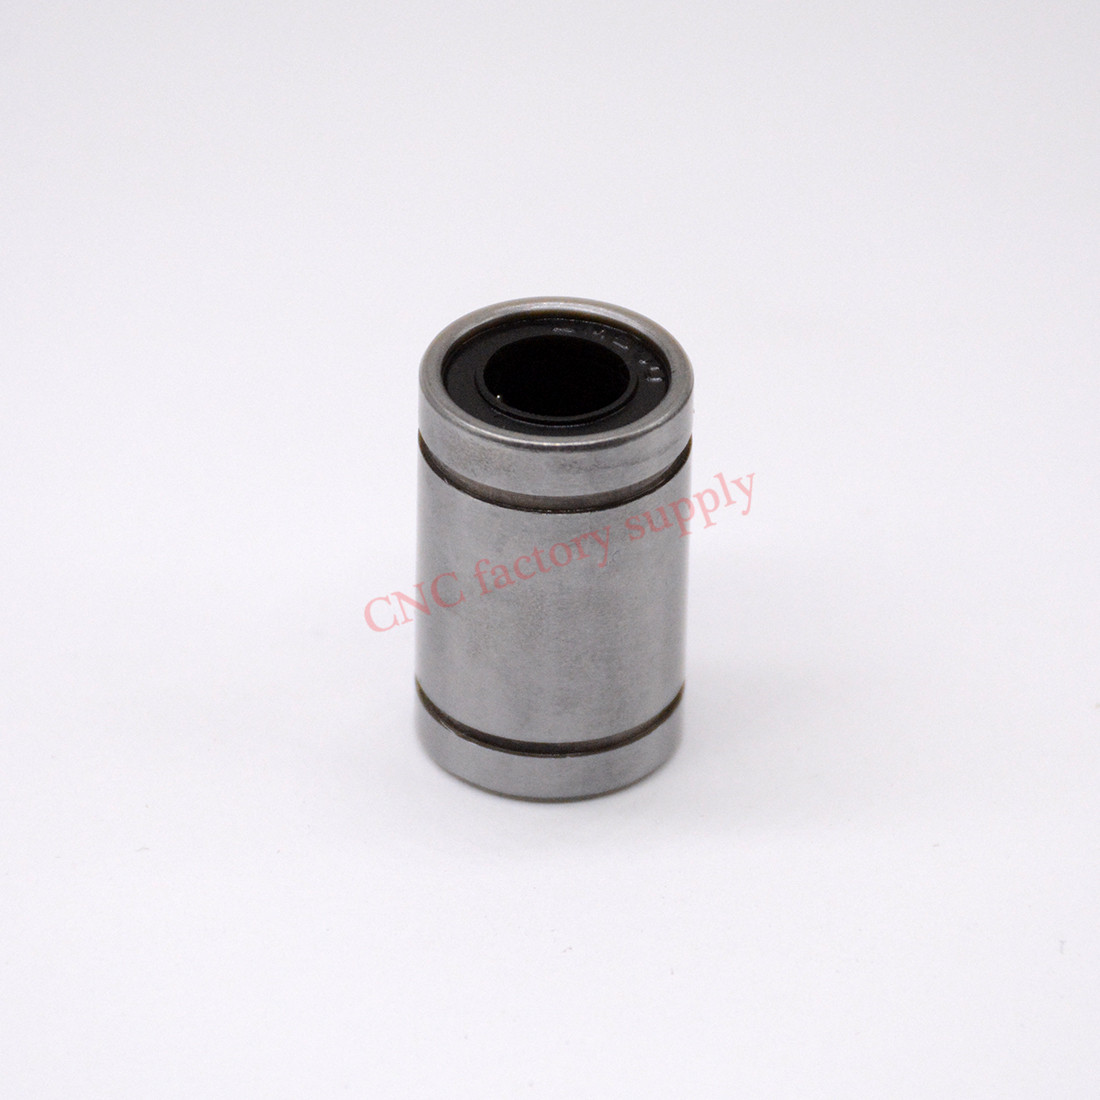 Free shipping LM50UU Linear Bushing 50mm CNC Linear Bearings LQ free shipping lm60uu 60mm linear bushing cnc linear bearings